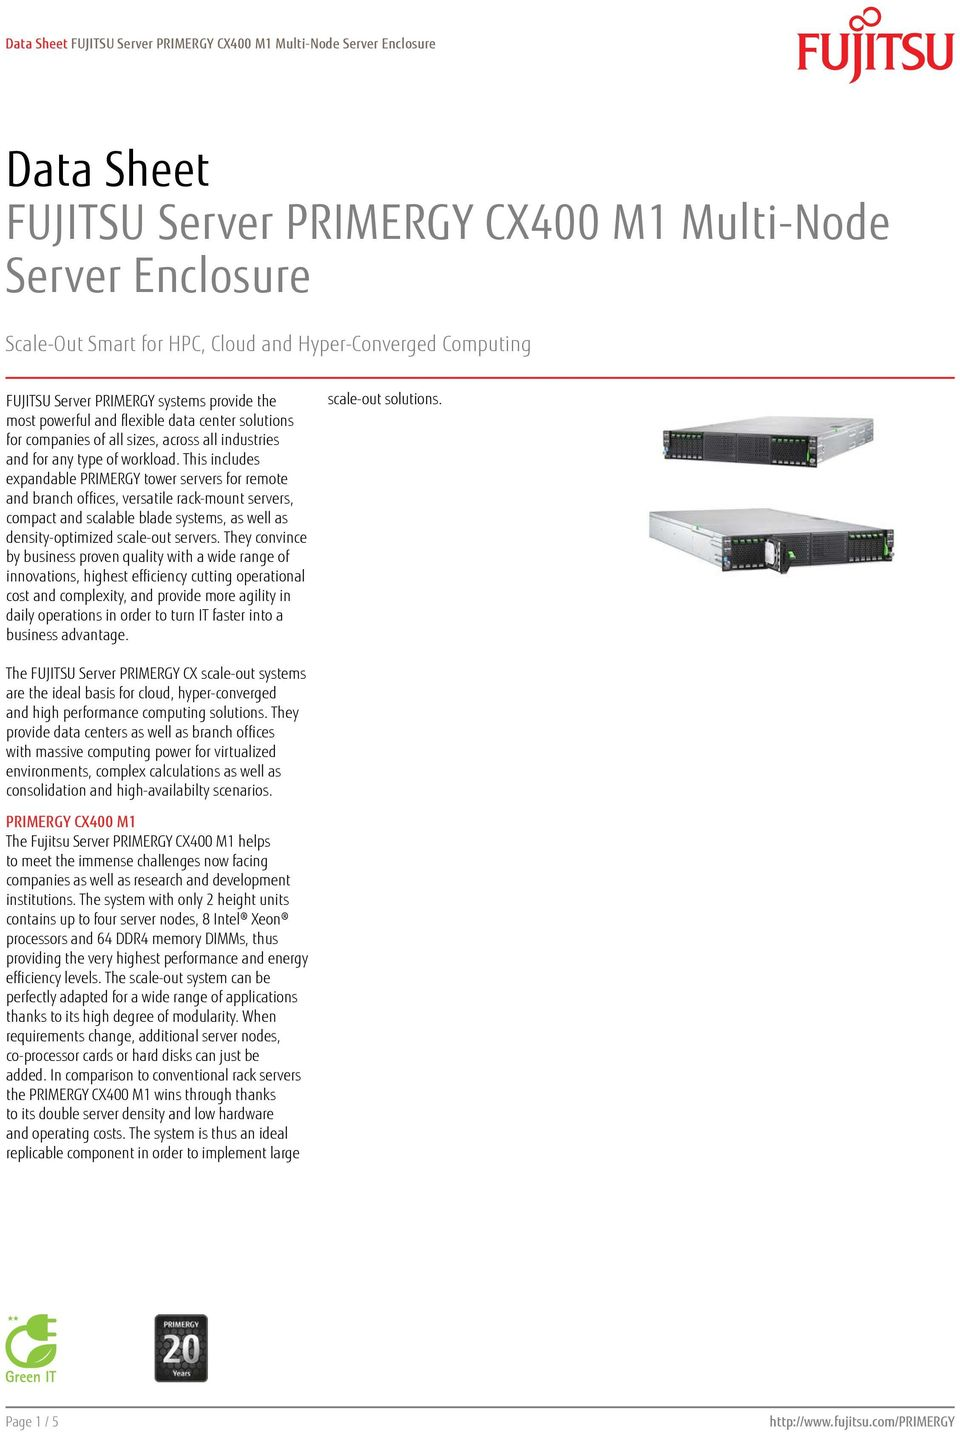 This includes expandable PRIMERGY tower servers for remote and branch offices, versatile rack-mount servers, compact and scalable blade systems, as well as density-optimized scale-out servers.